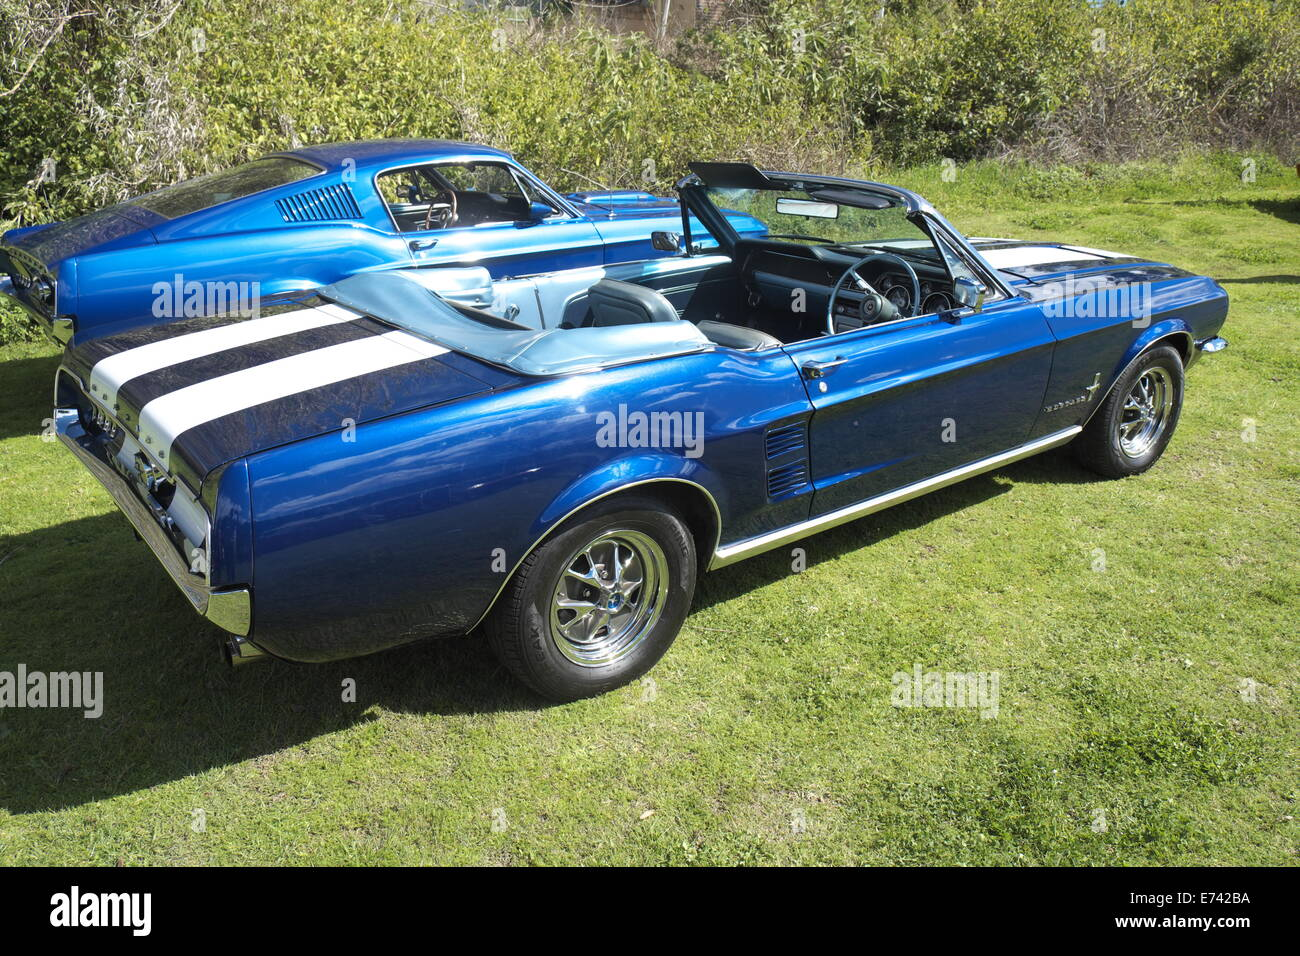 ford mustang 1967 stockfotos ford mustang 1967 bilder. Black Bedroom Furniture Sets. Home Design Ideas